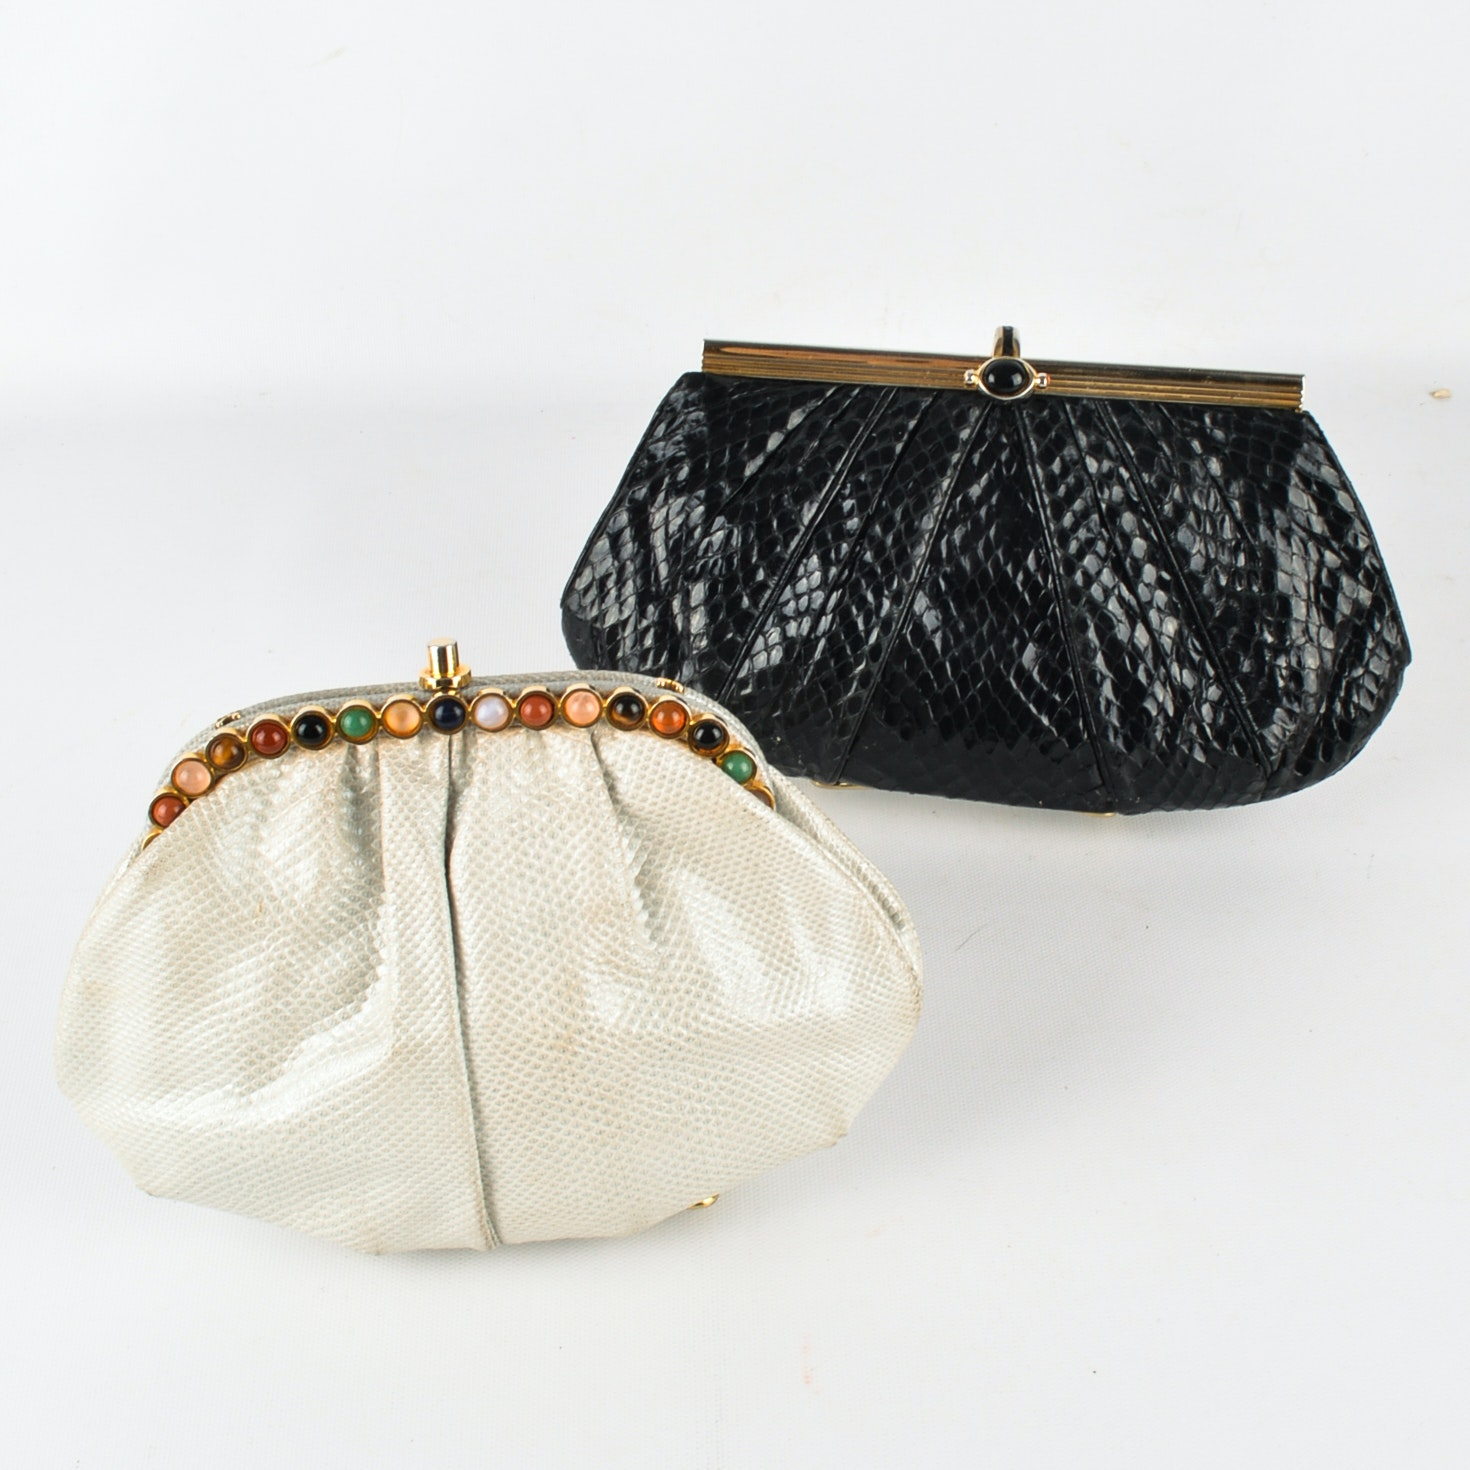 Two Judith Leiber Clutch Handbags